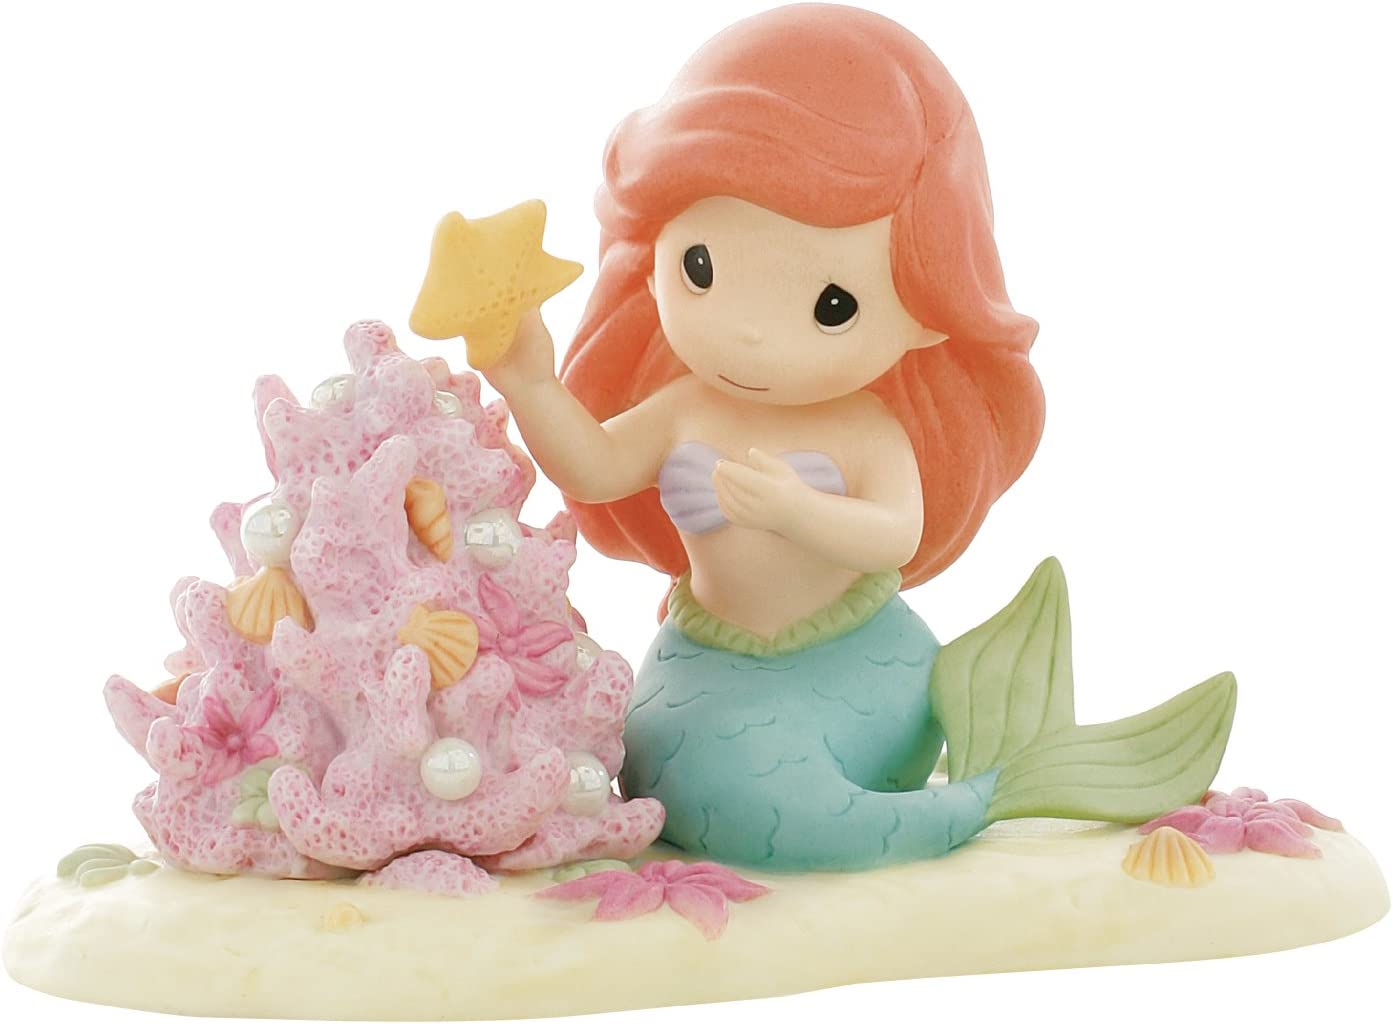 Precious Moments Disney Collection The Christmas Spirit is A Part of My World Figurine